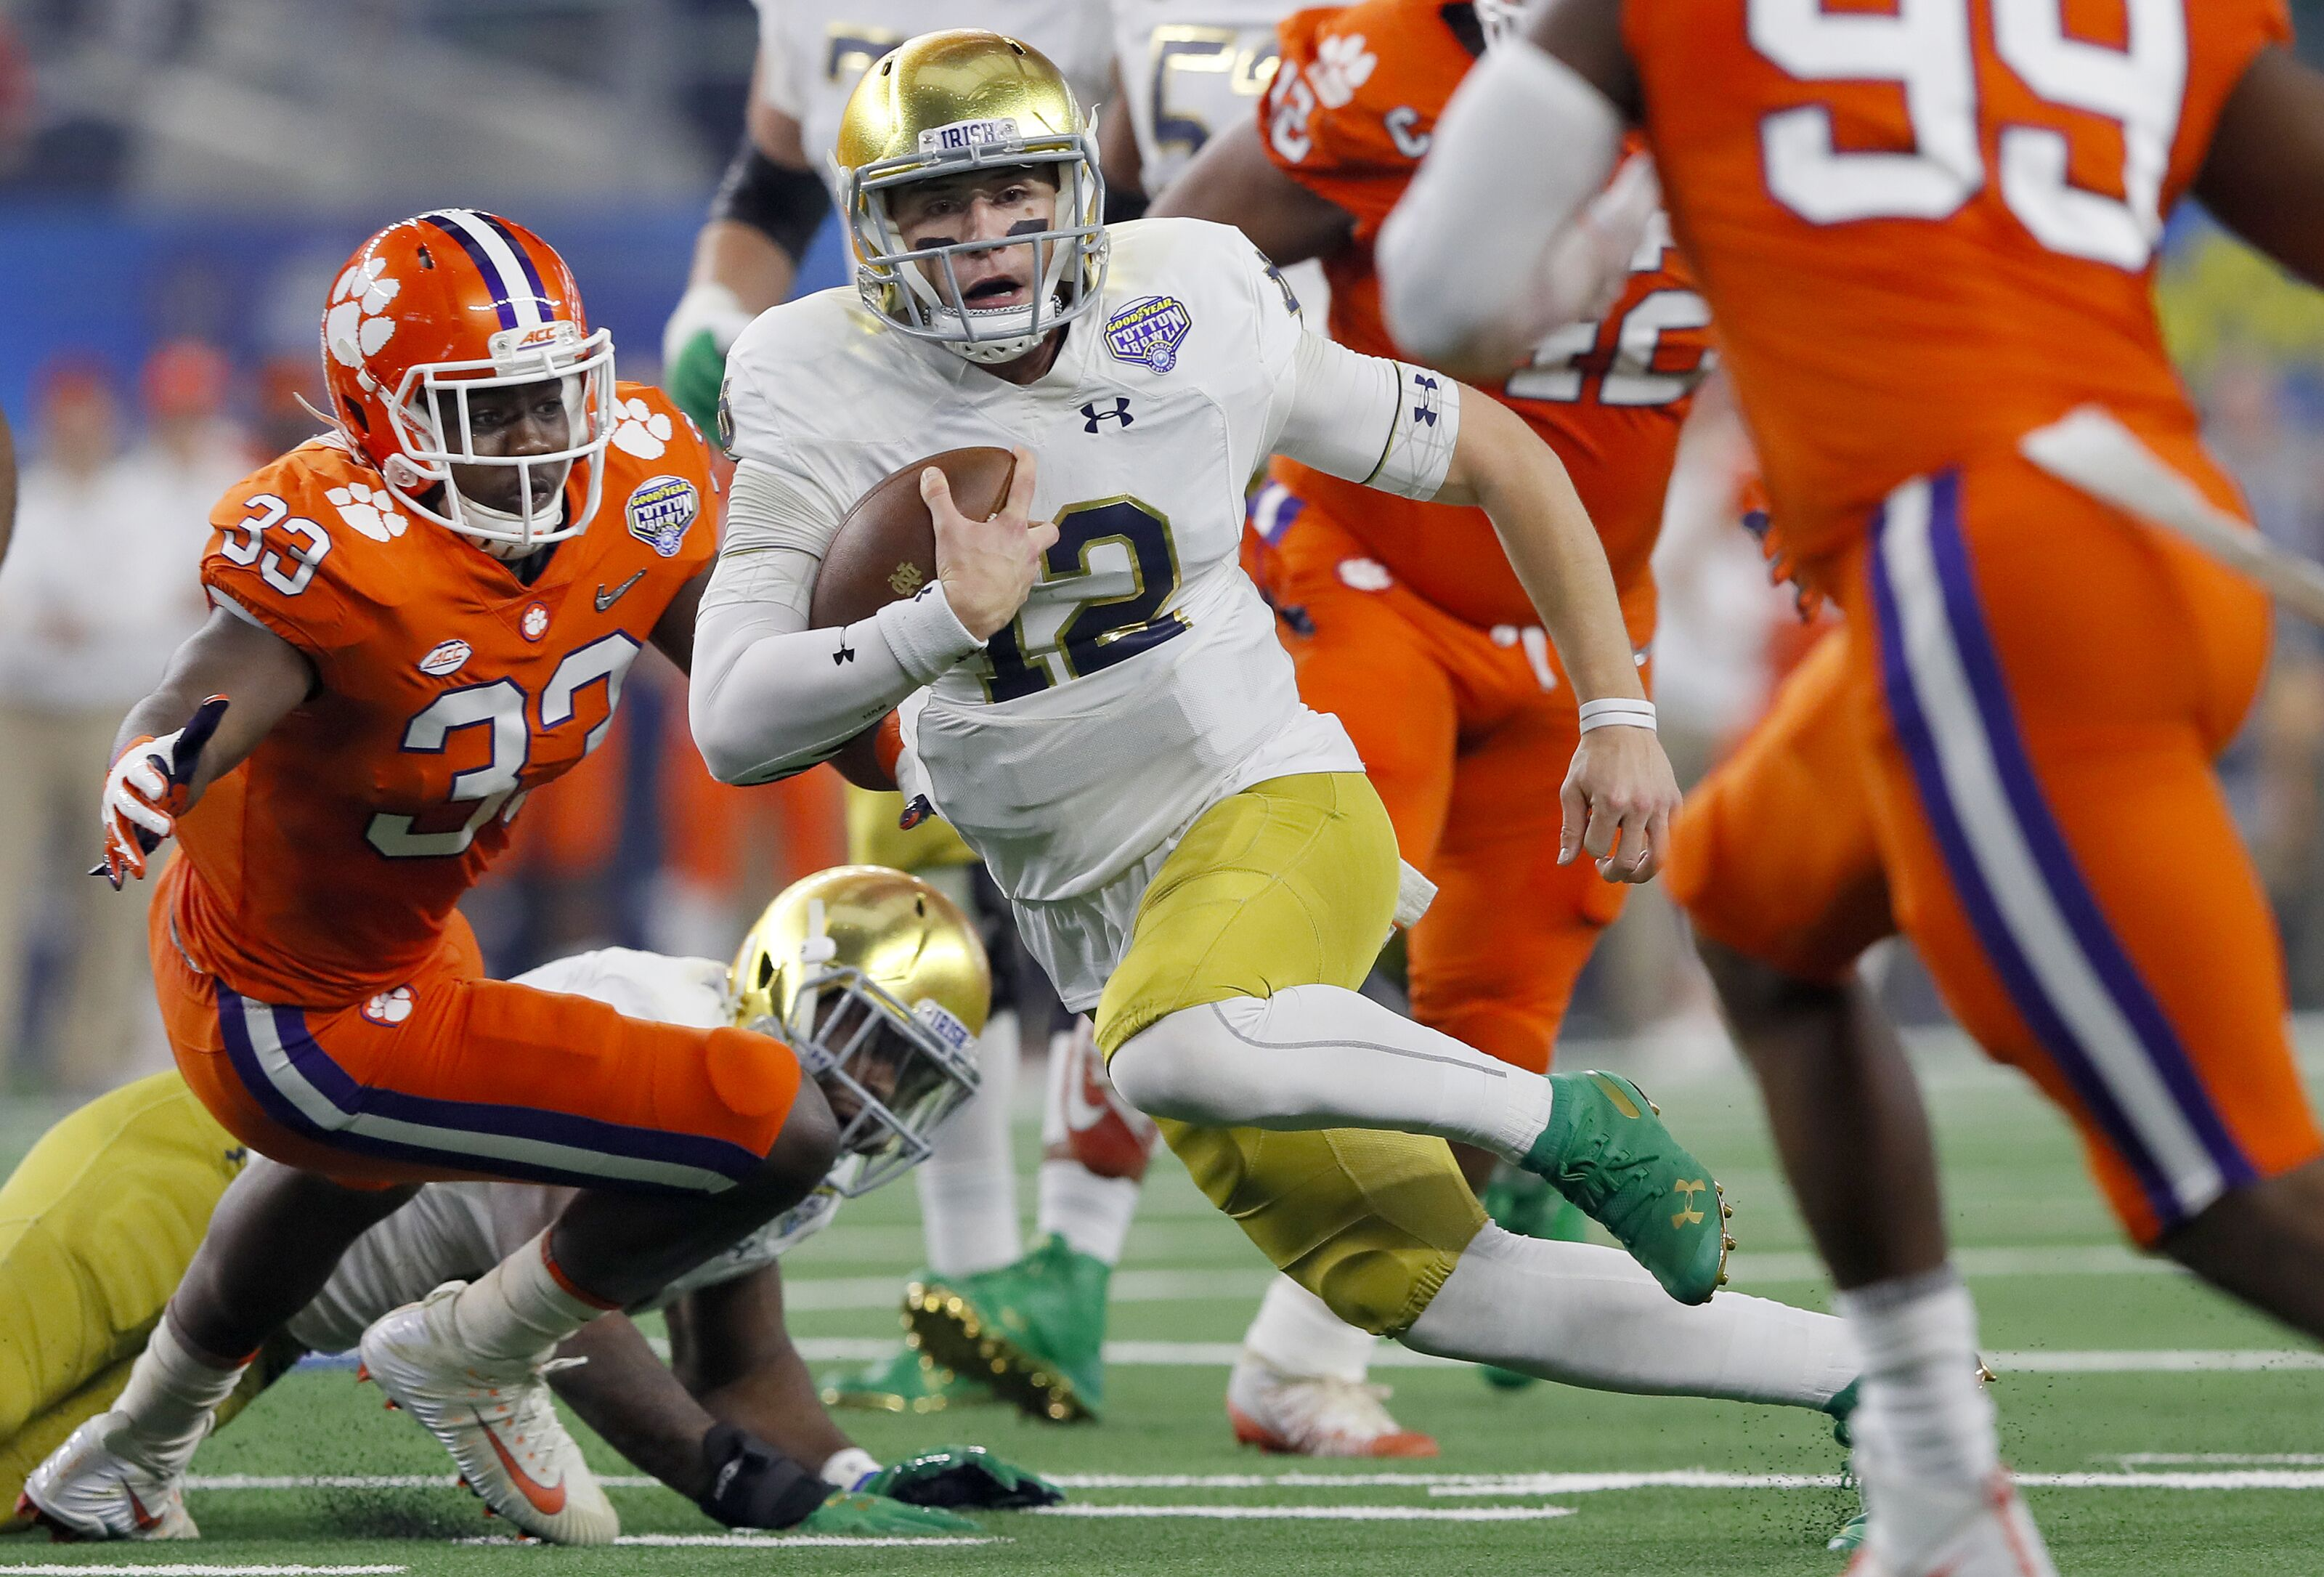 Notre Dame Football: Where Does Ian Book Rank Among College QBs?